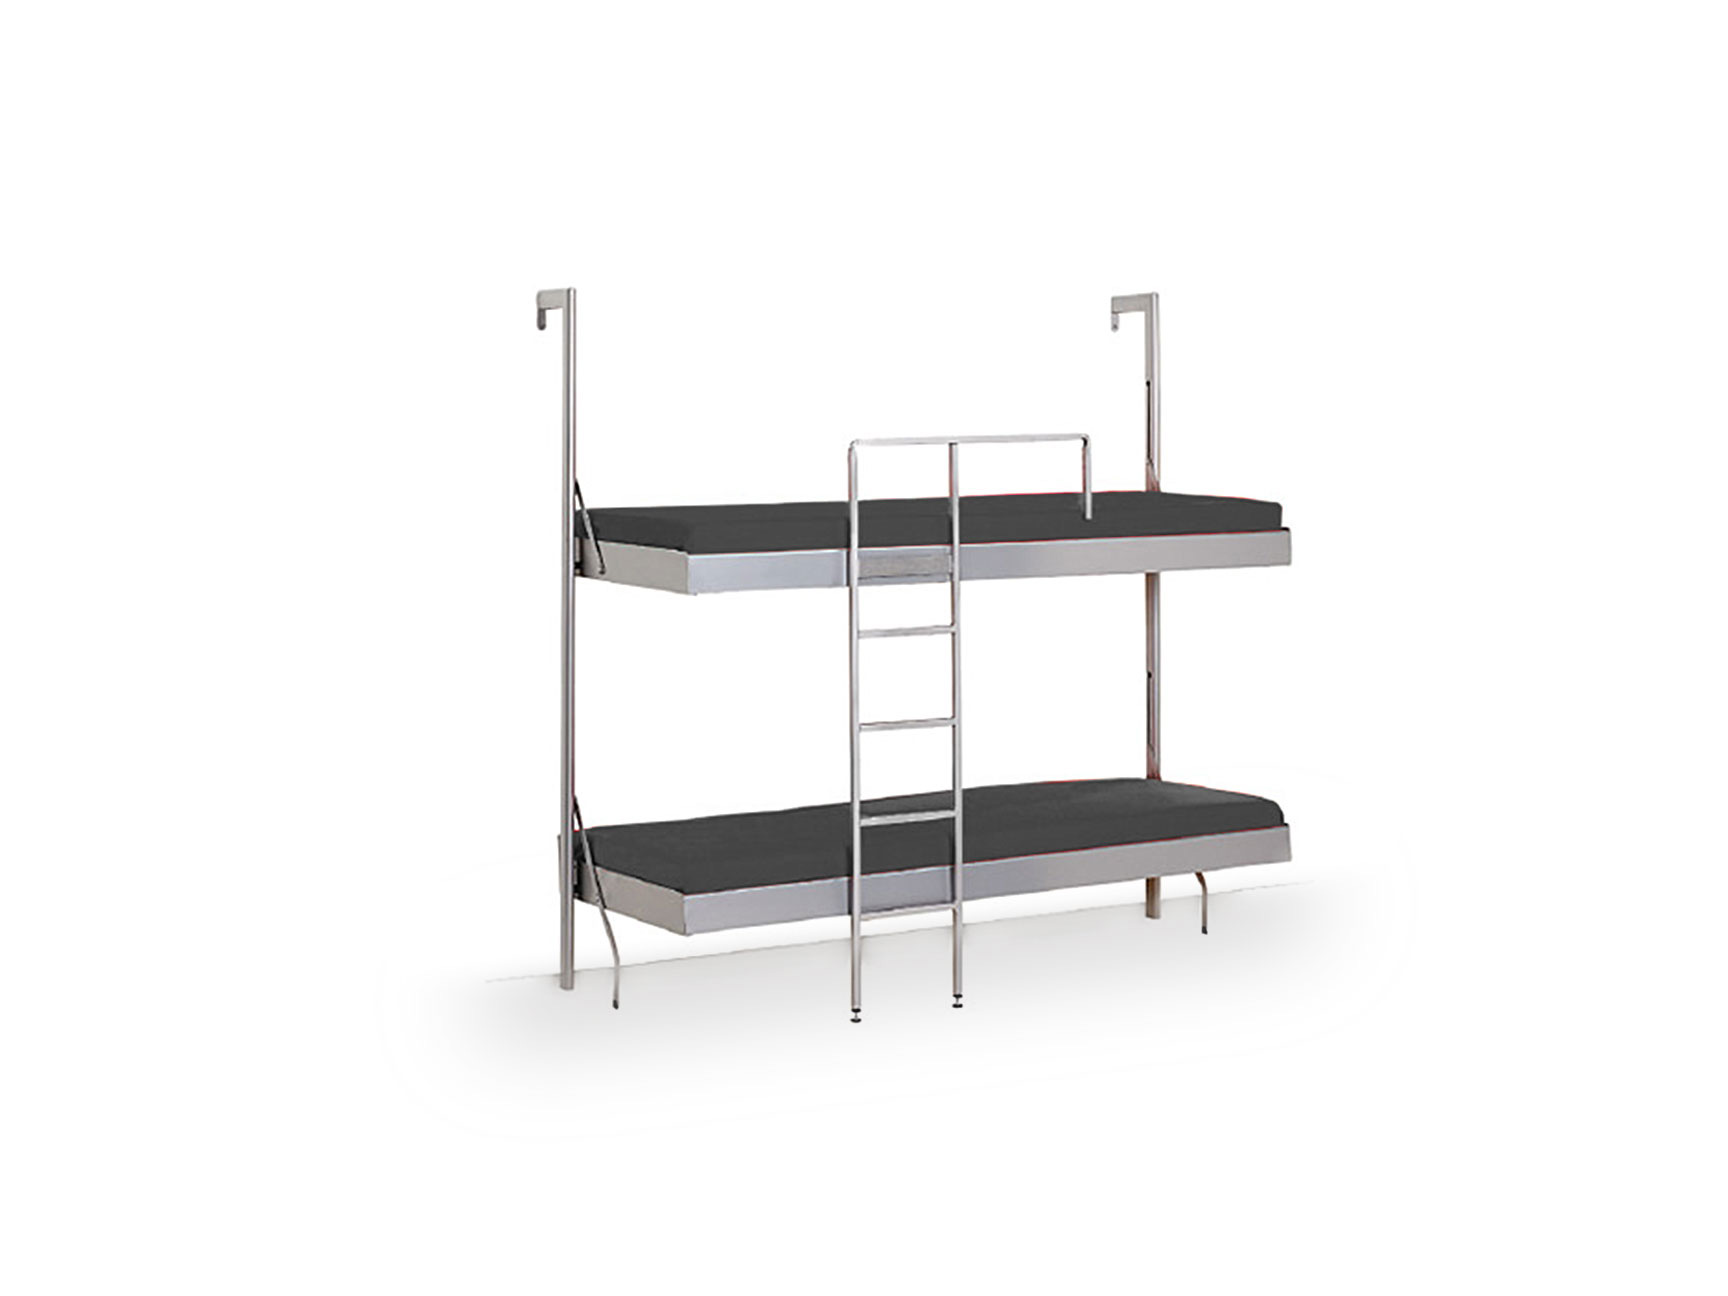 Compatto Murphy Bunk Bed From Italy Expand Furniture